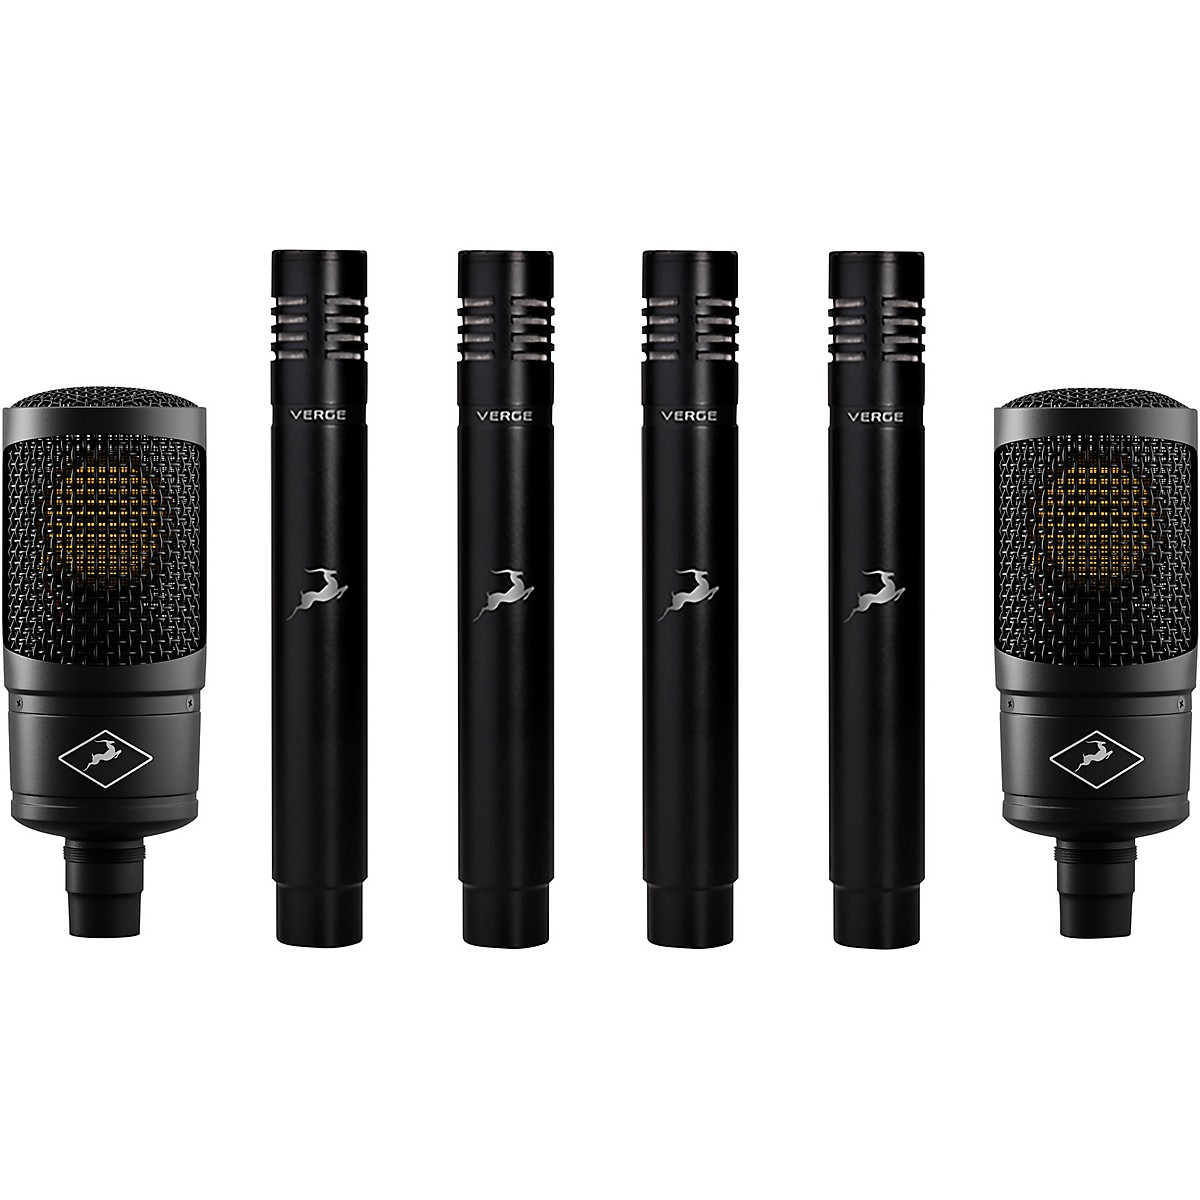 Antelope Audio Edge Solo Verge Bundle with 2 Edge Solos & 4 Verge Modeling Microphones